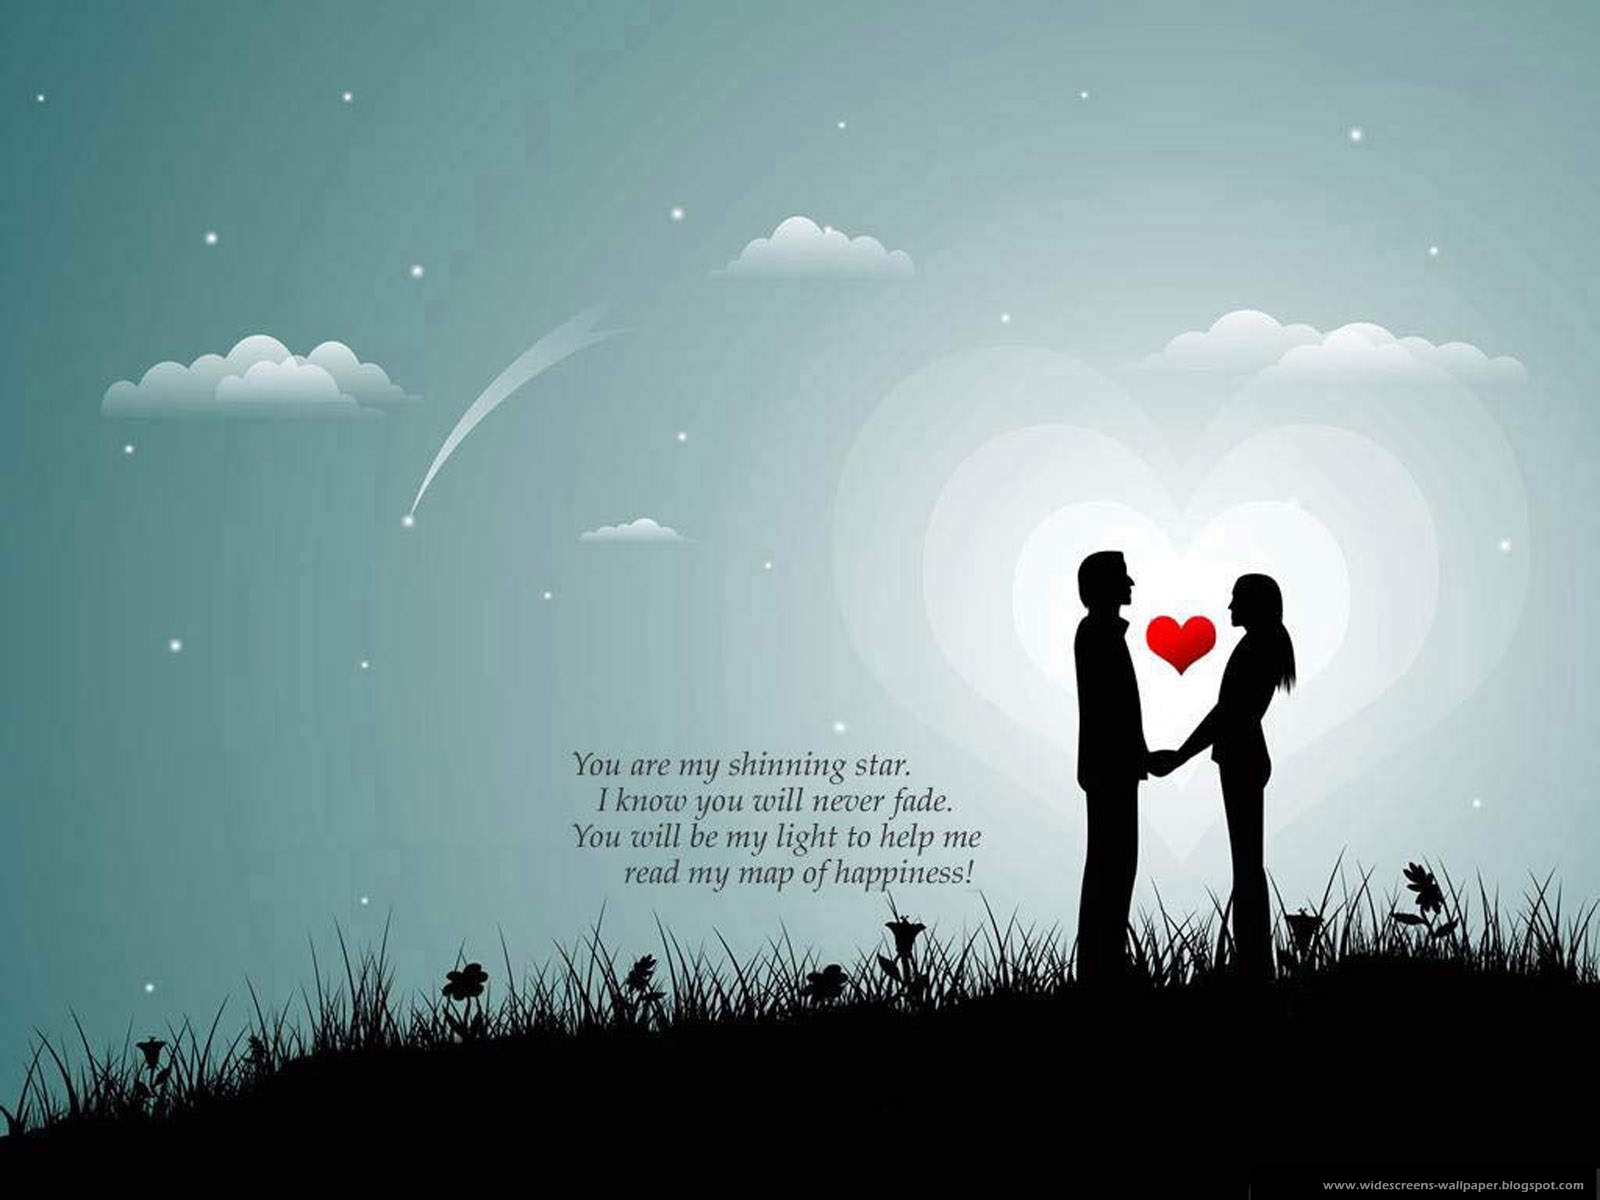 Romantic Love Quotes Wallpaper : Wallpaper collection For Your computer and Mobile Phones: New Romantic Love Words And Quotations ...